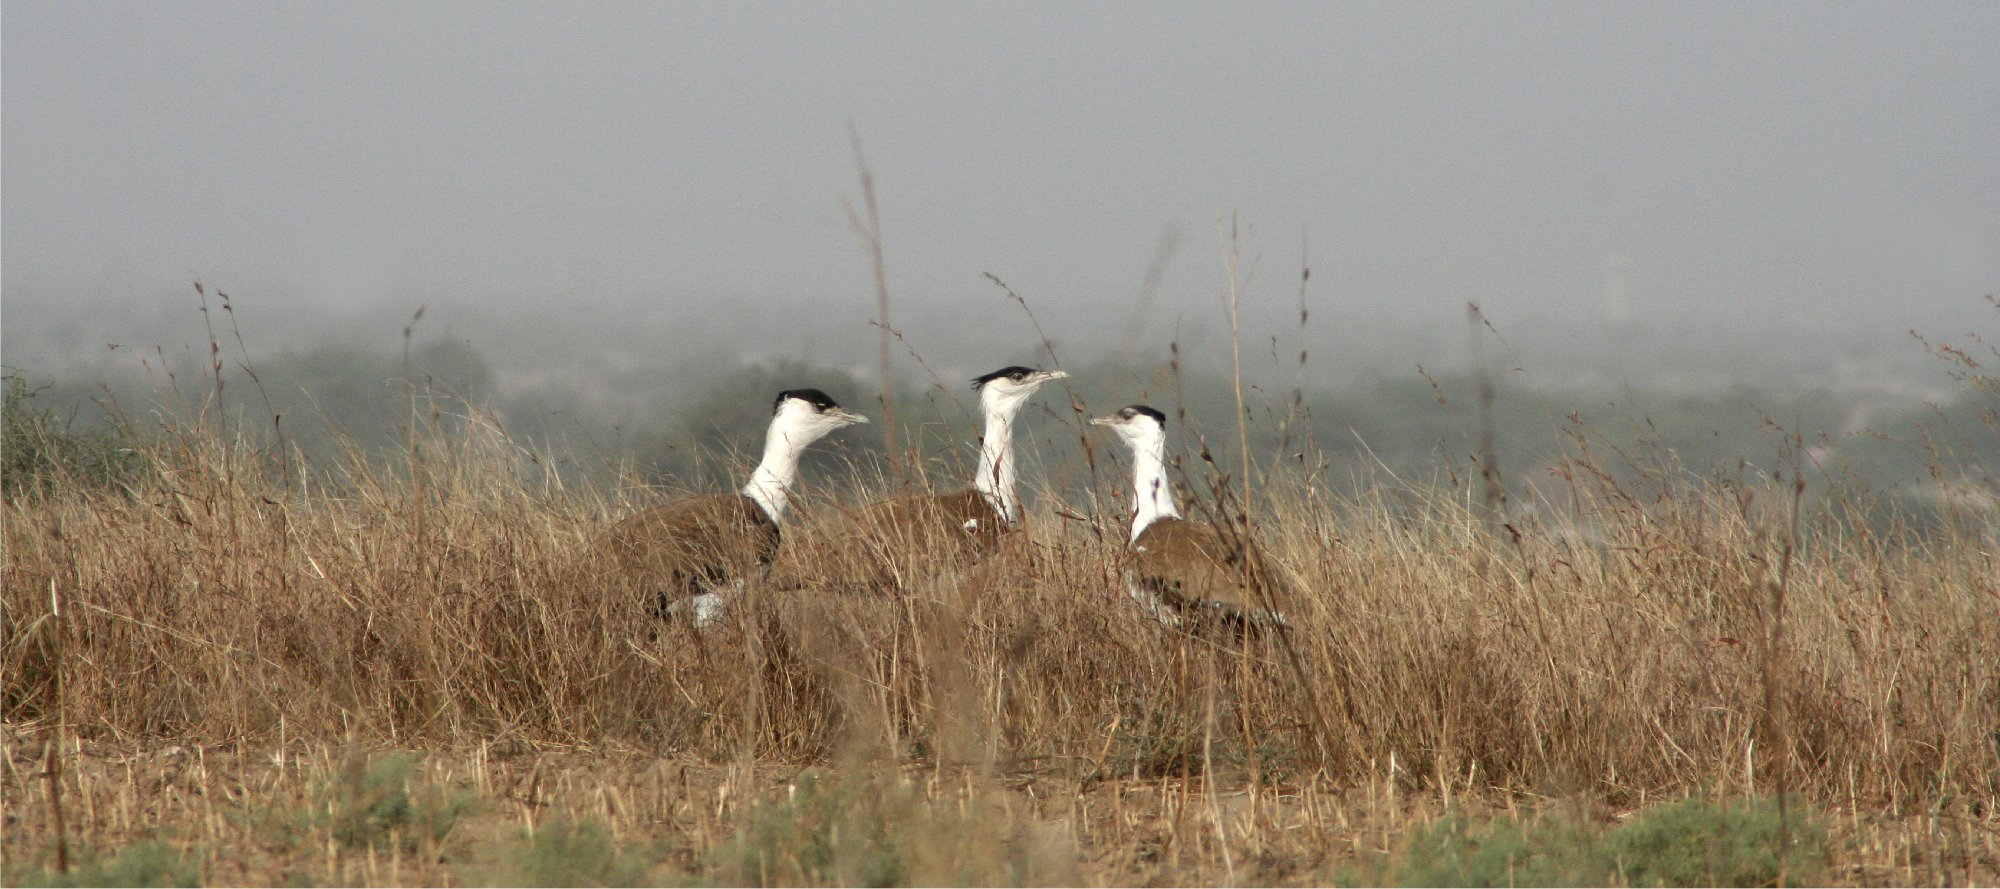 The endangered Great Indian Bustard. Photo credit: Jugal Tiwari